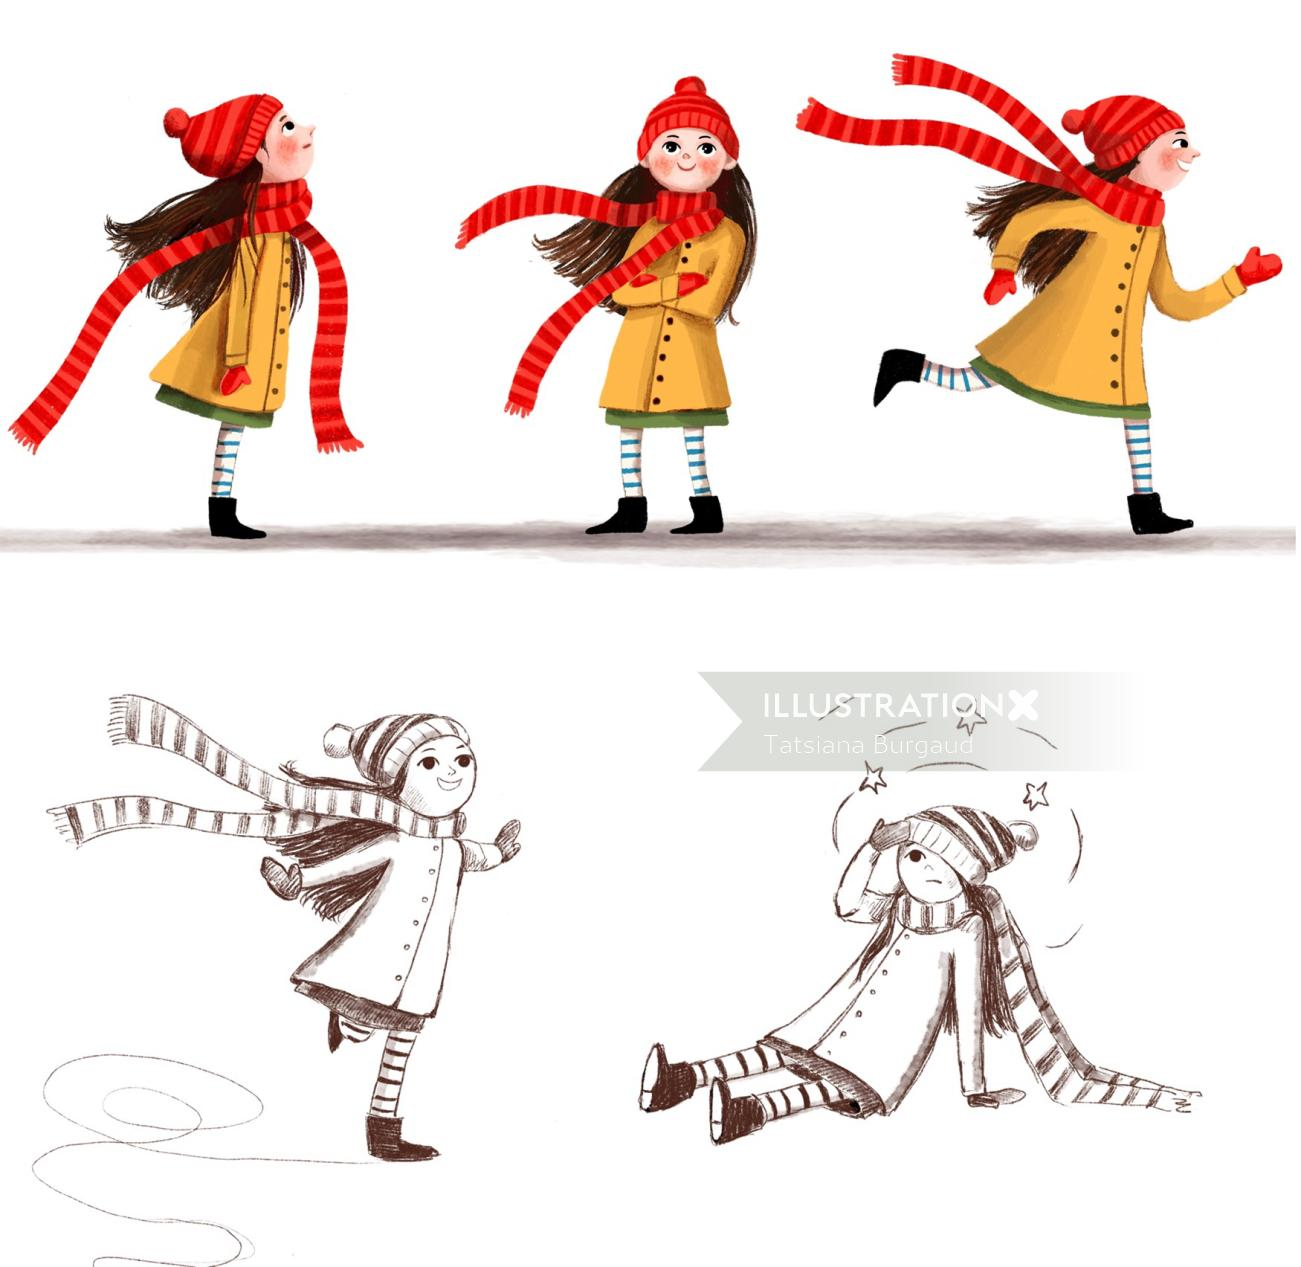 character, girl, child, action